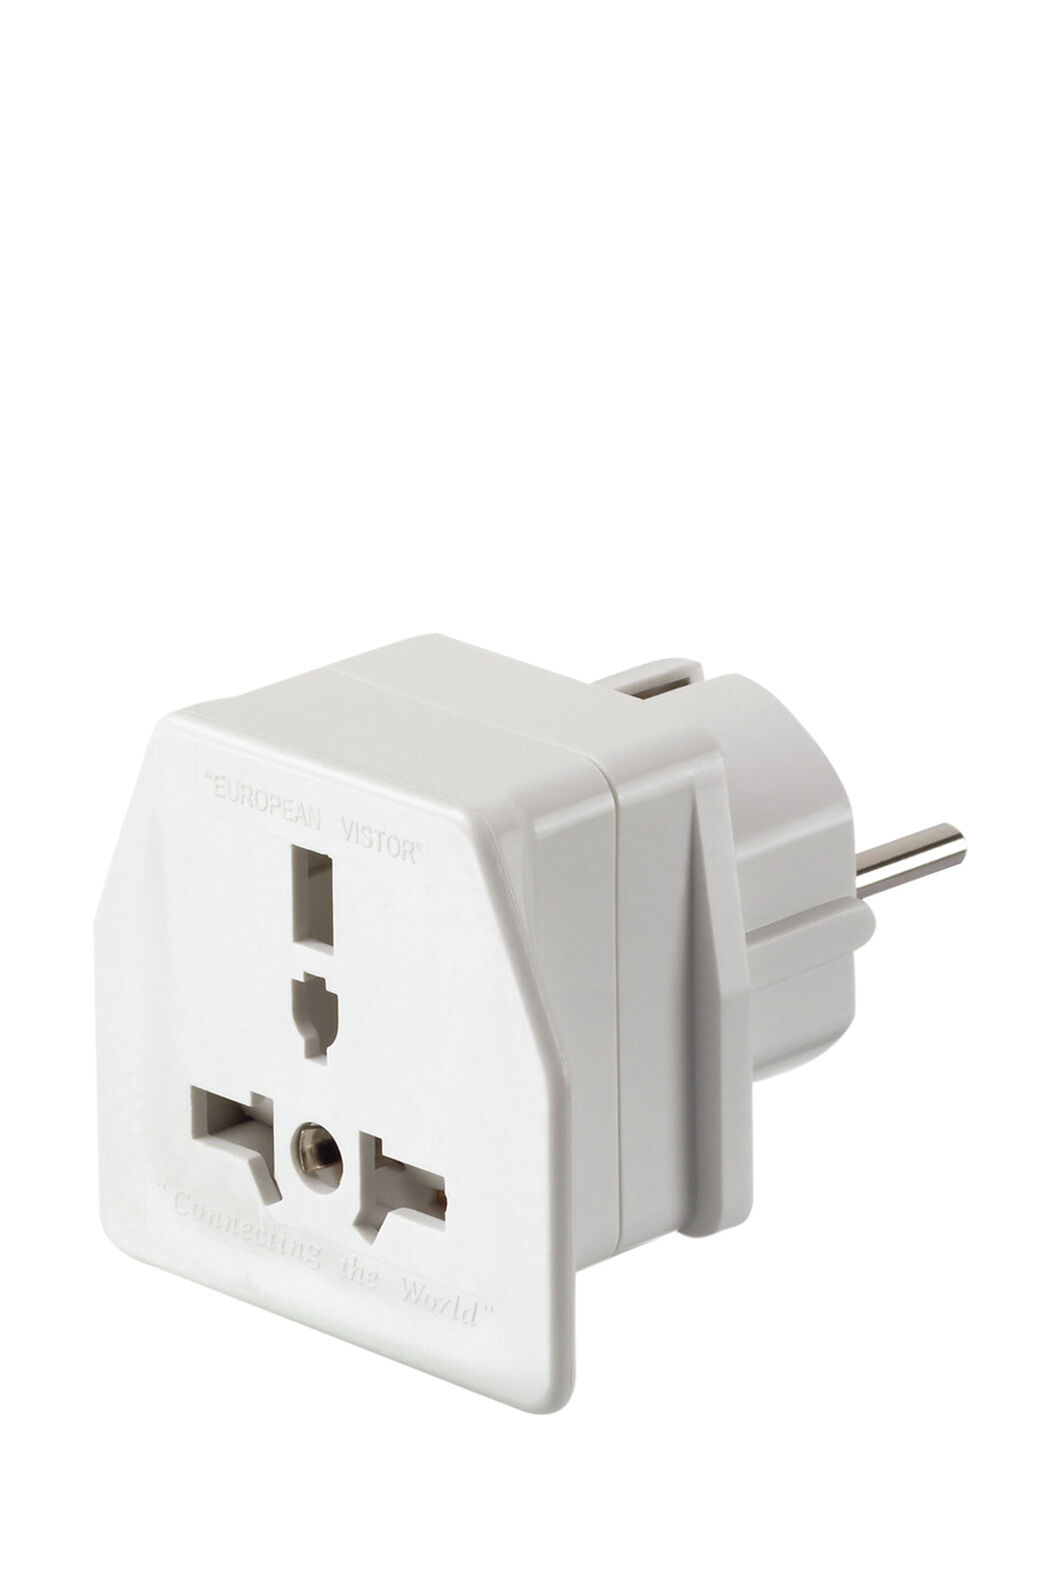 Go Travel European Travel Adaptor, None, hi-res